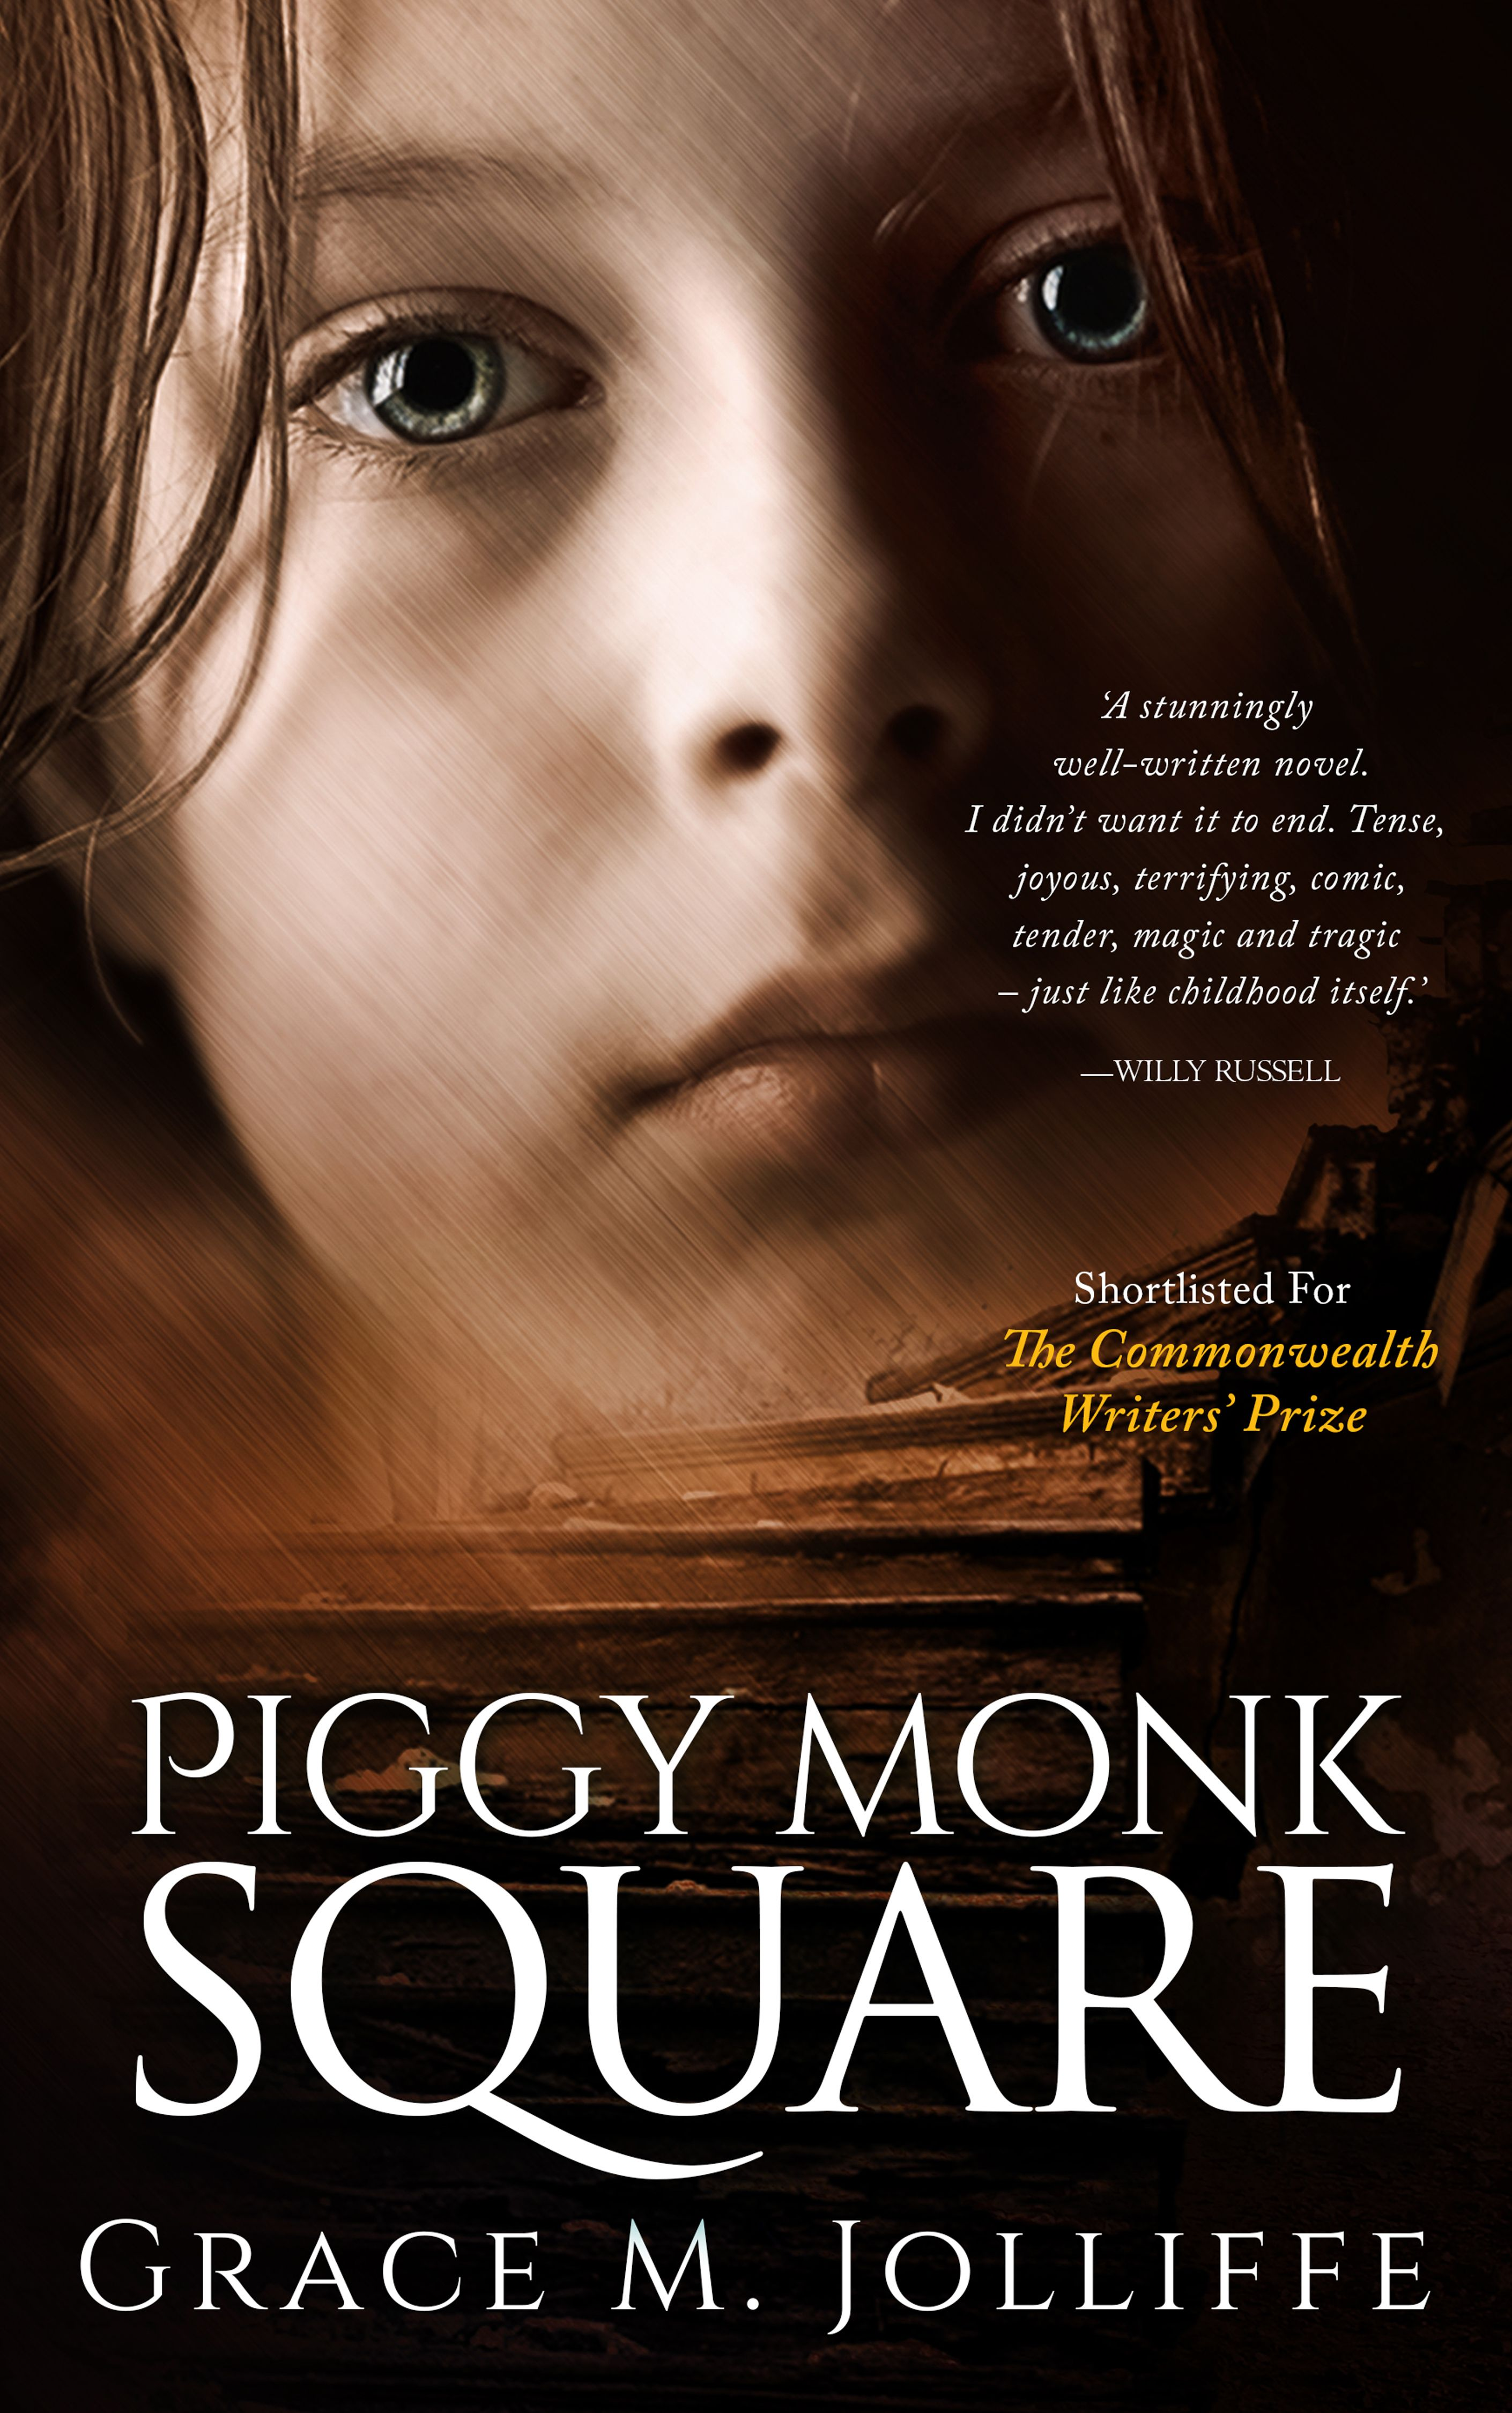 Piggy Monk Square By Grace M Jolliffe Gritty, Dark And Humorous Thriller